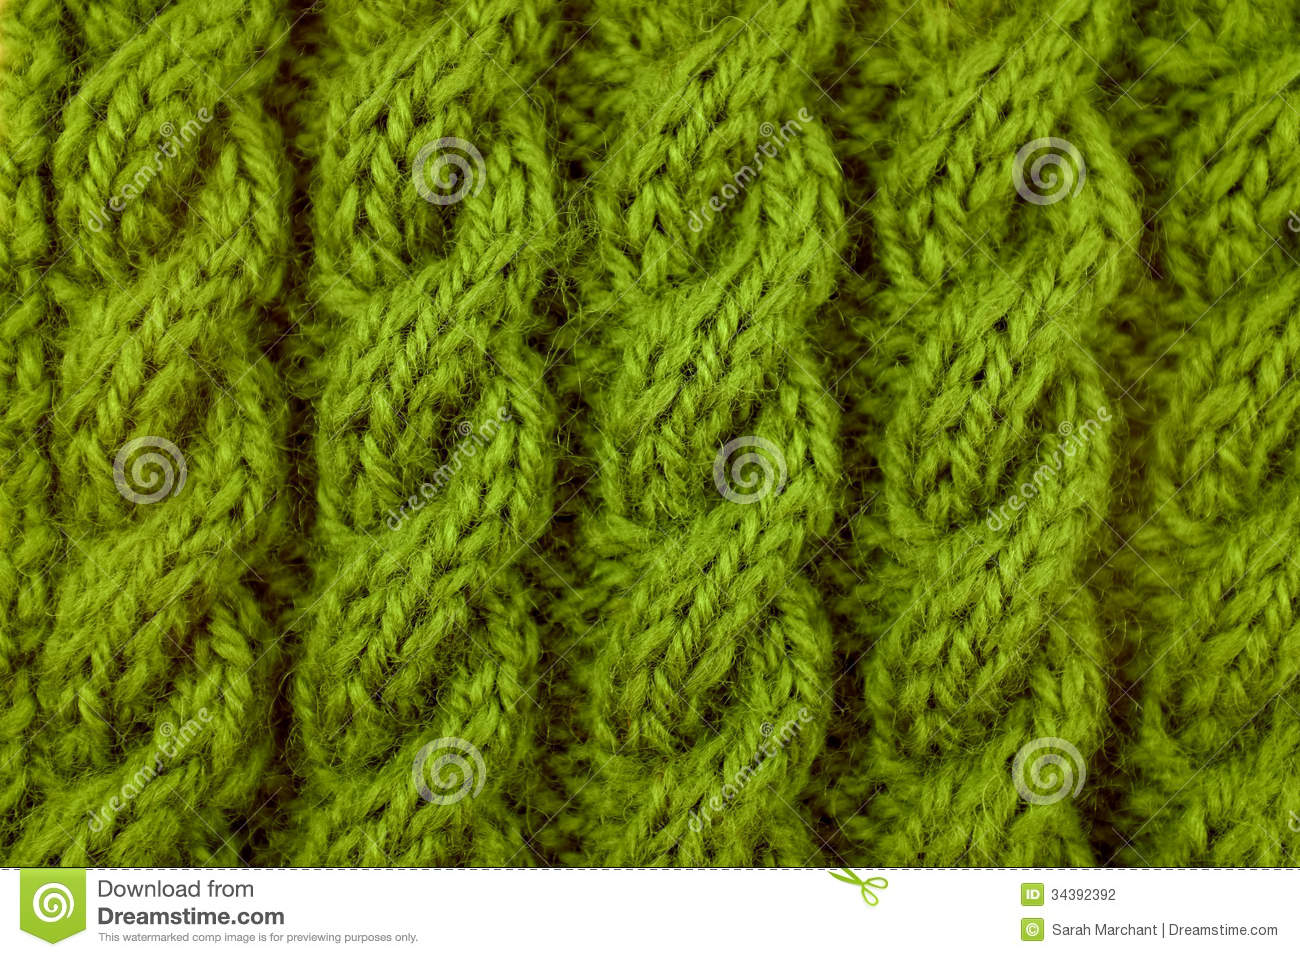 Closeup Of Green Cable Knitting Stitch Stock Photo - Image of ...